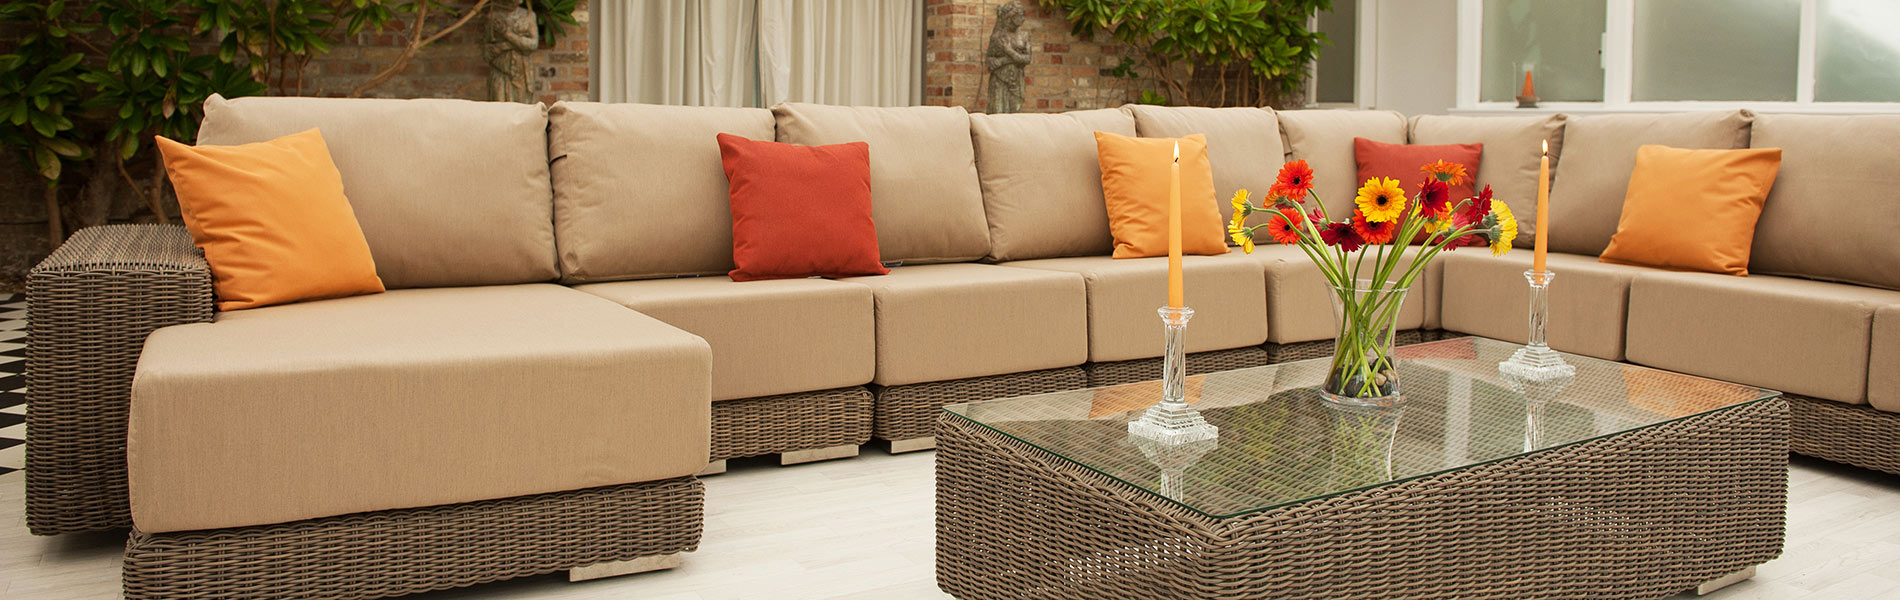 Best Conservatory Furniture rattan conservatory furniture